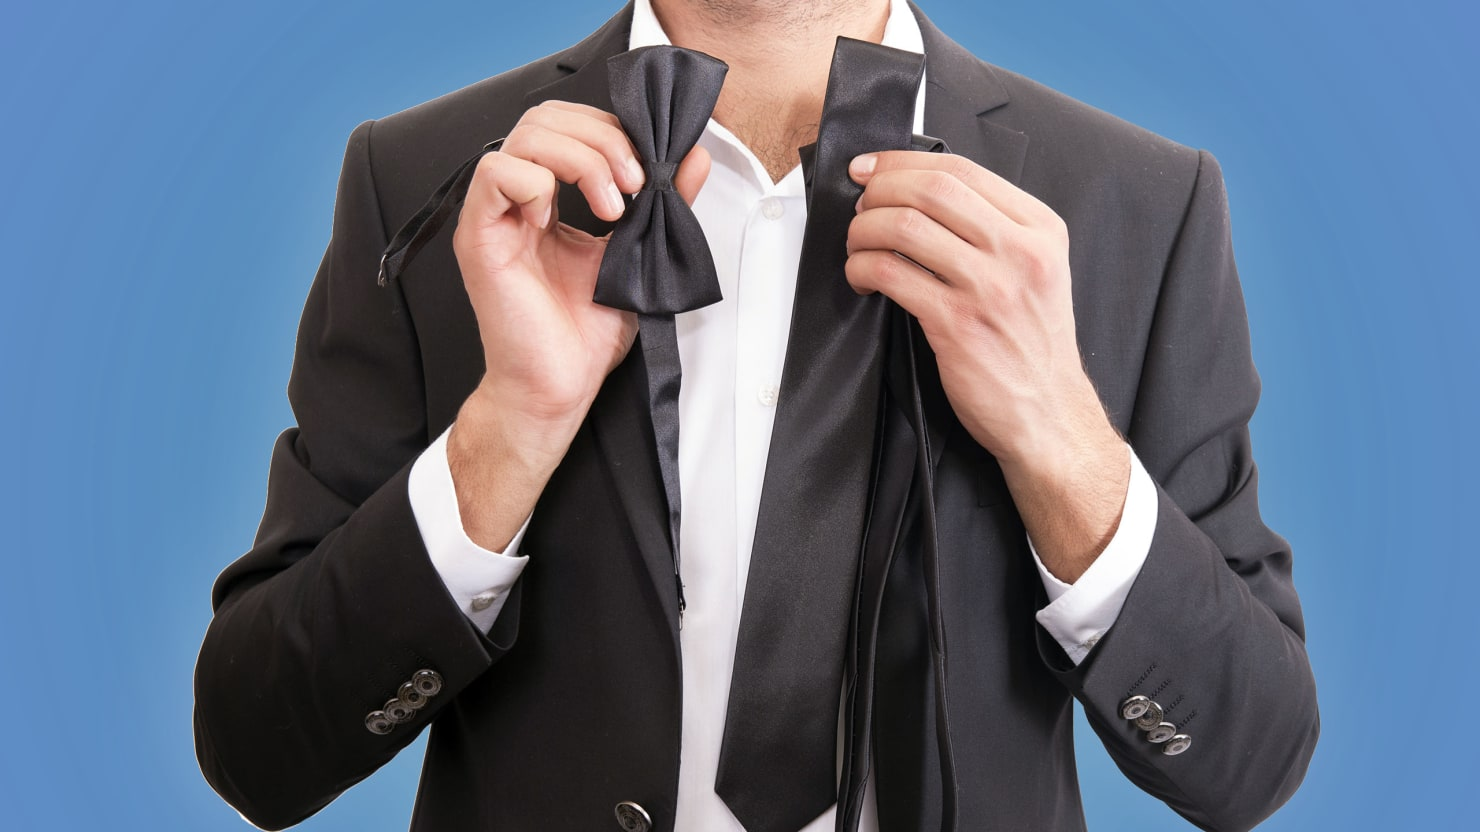 The Necktie May No Longer Be A Required Part Of Business Attire, But Some  Men